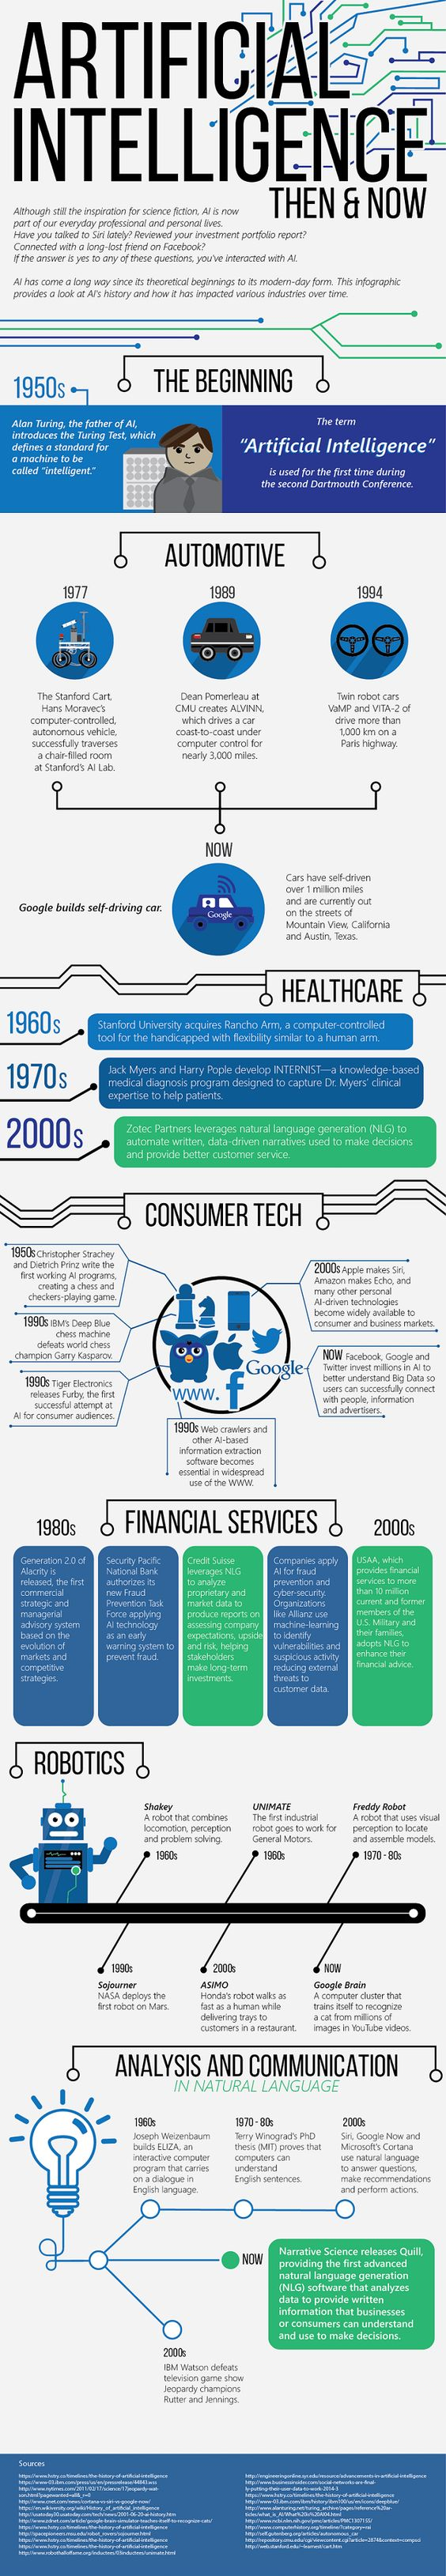 Check out this week's Infographic Tuesday - Artificial Intelligence: Then and Now. Please feel free to share!